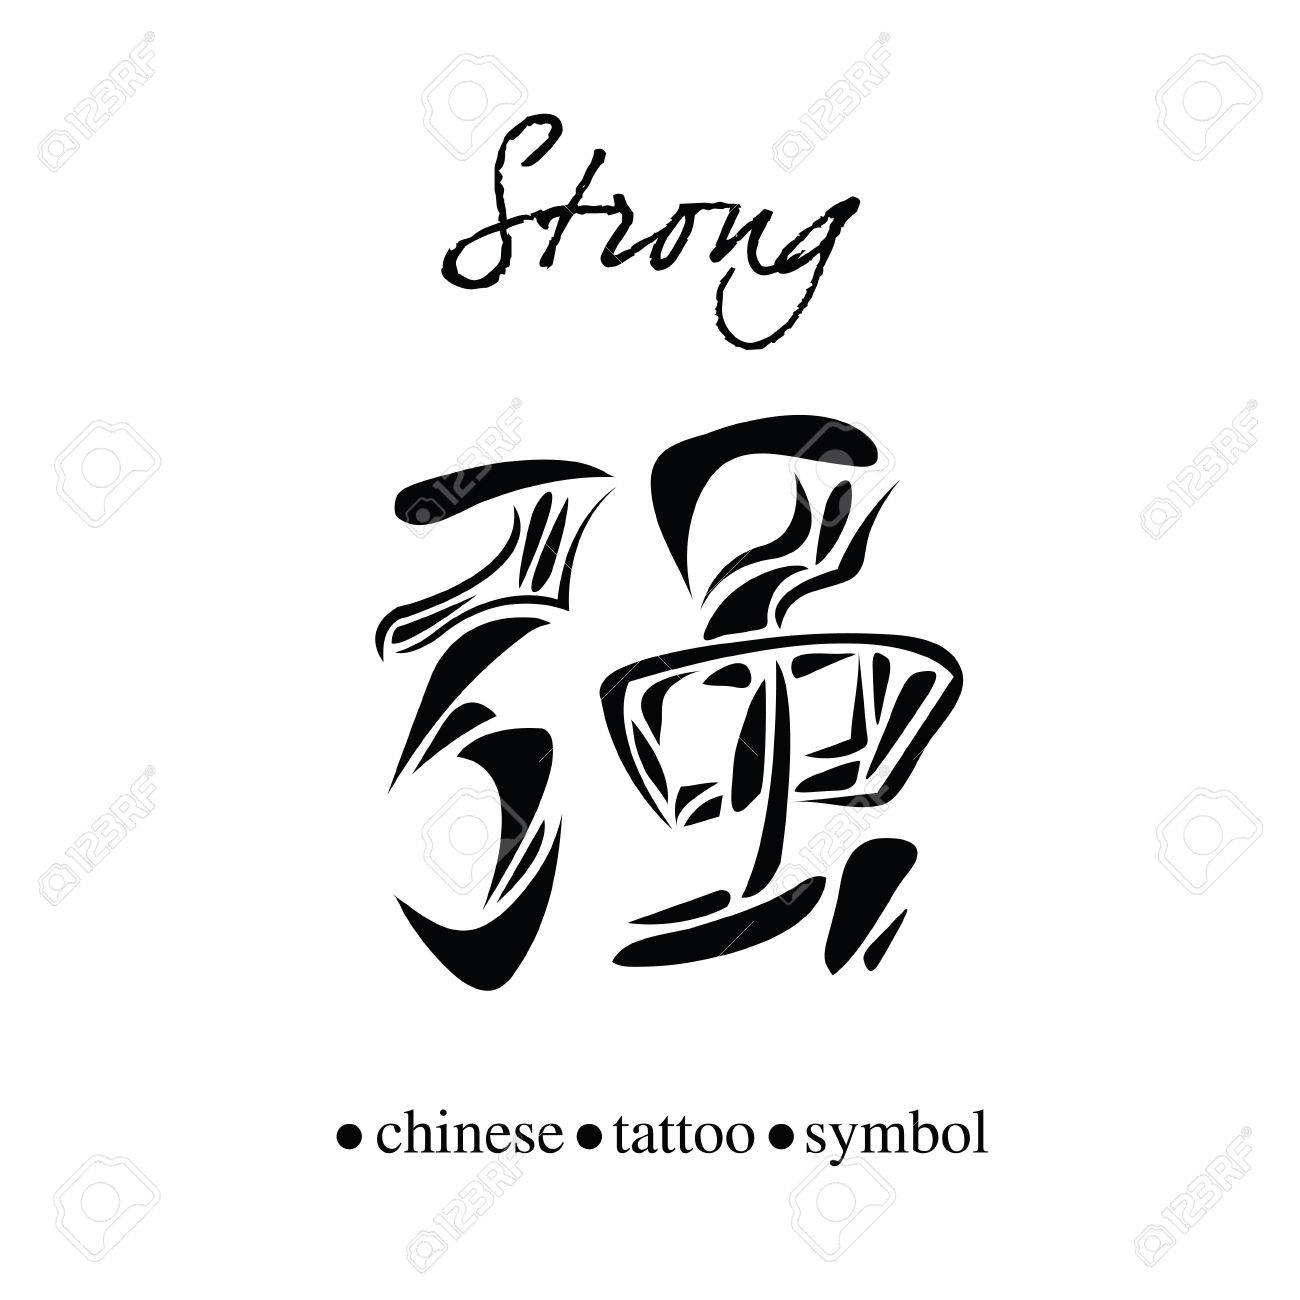 Chinese Character Calligraphy For Strong Royalty Free Cliparts